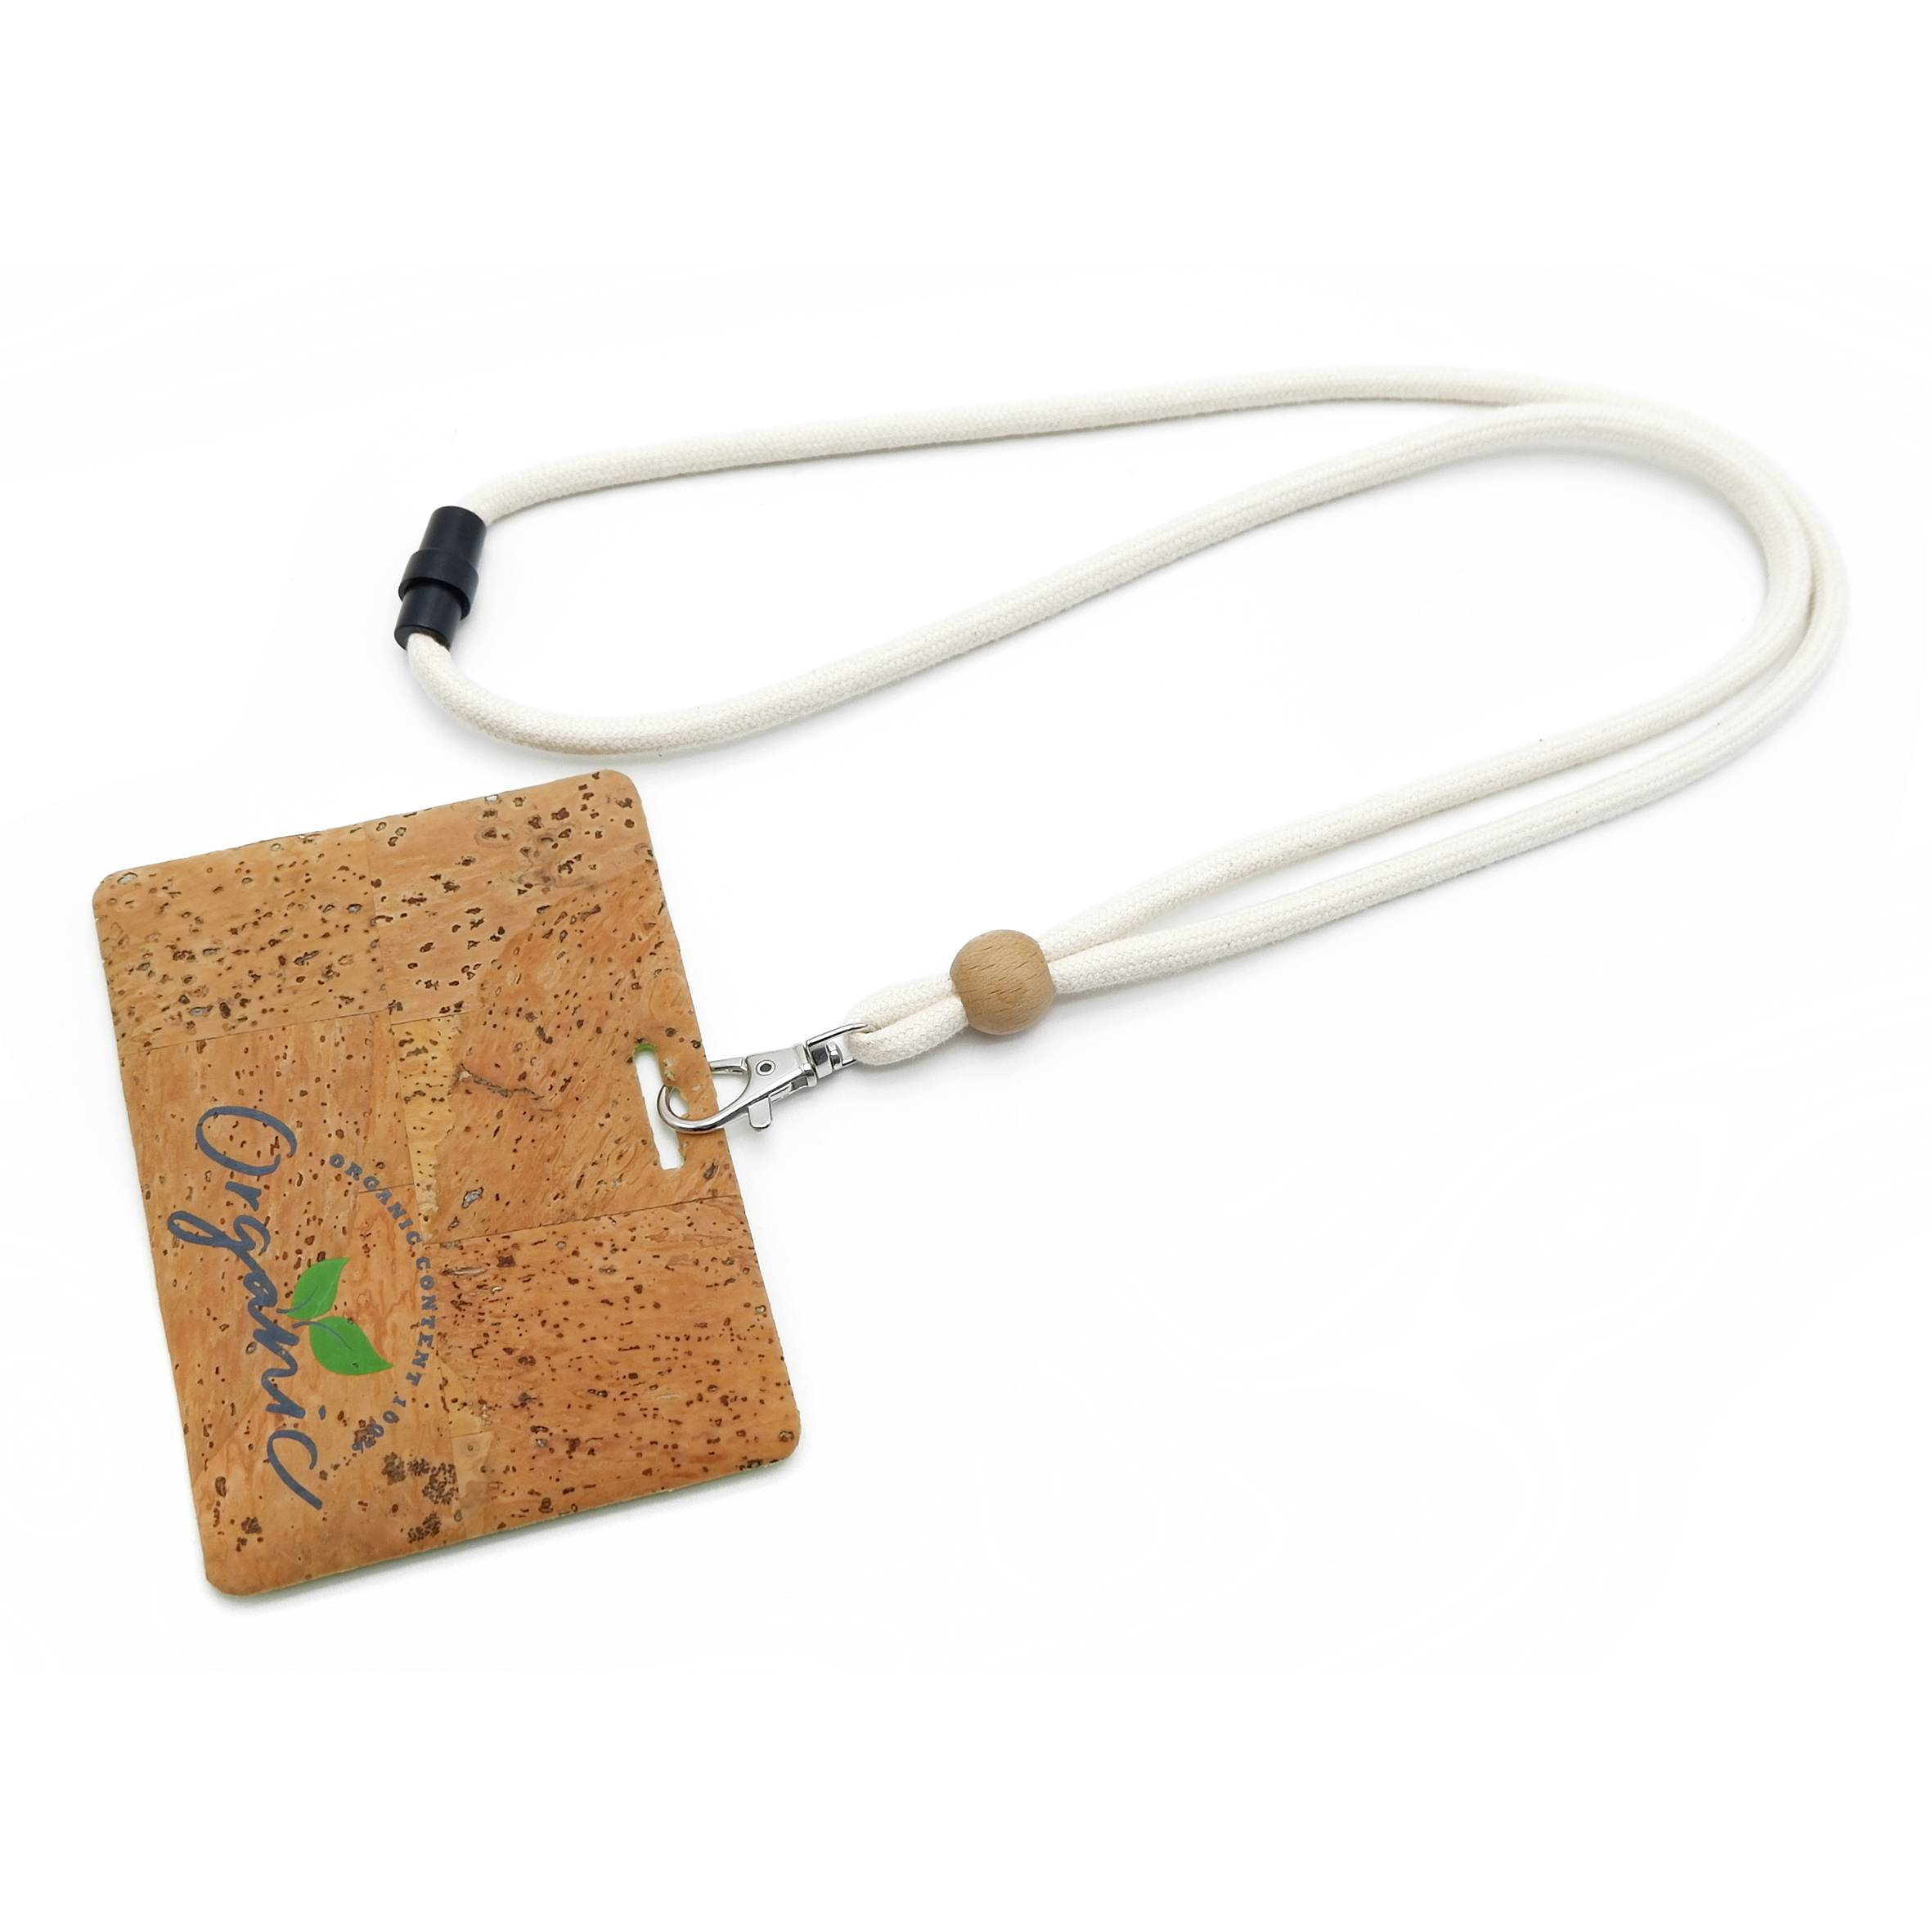 OS-0062 Cotton cord lanyard with cork badge holder